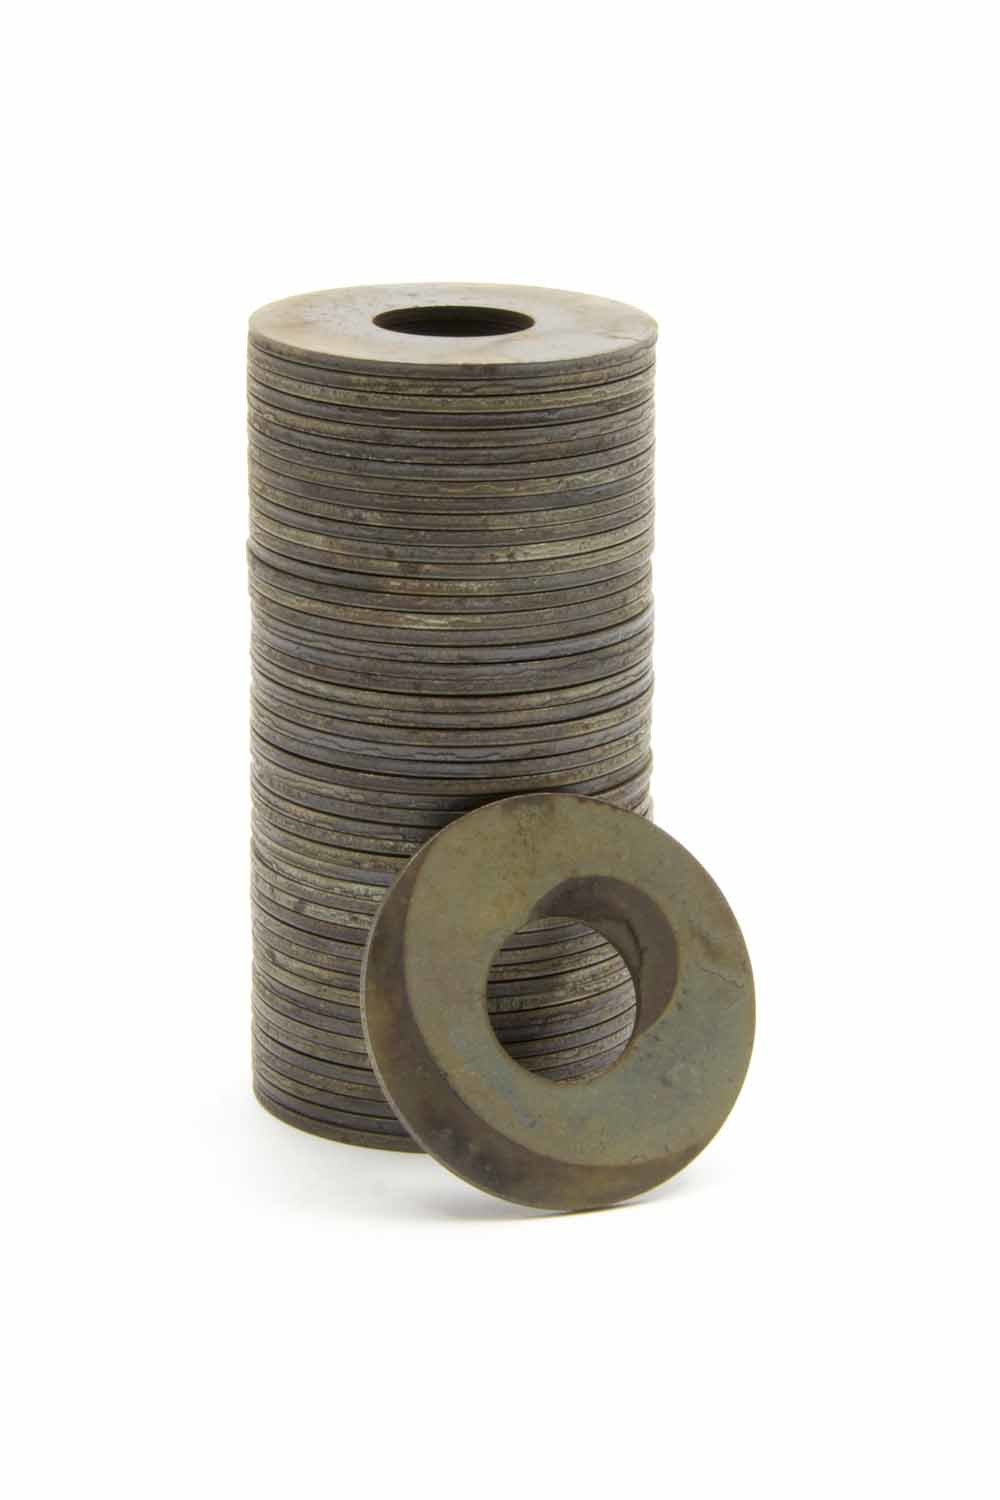 Manley 03276-50 Valve Spring Shim, 0.060 in Thick, 1.625 OD, 0.645 ID, Steel, Set of 50